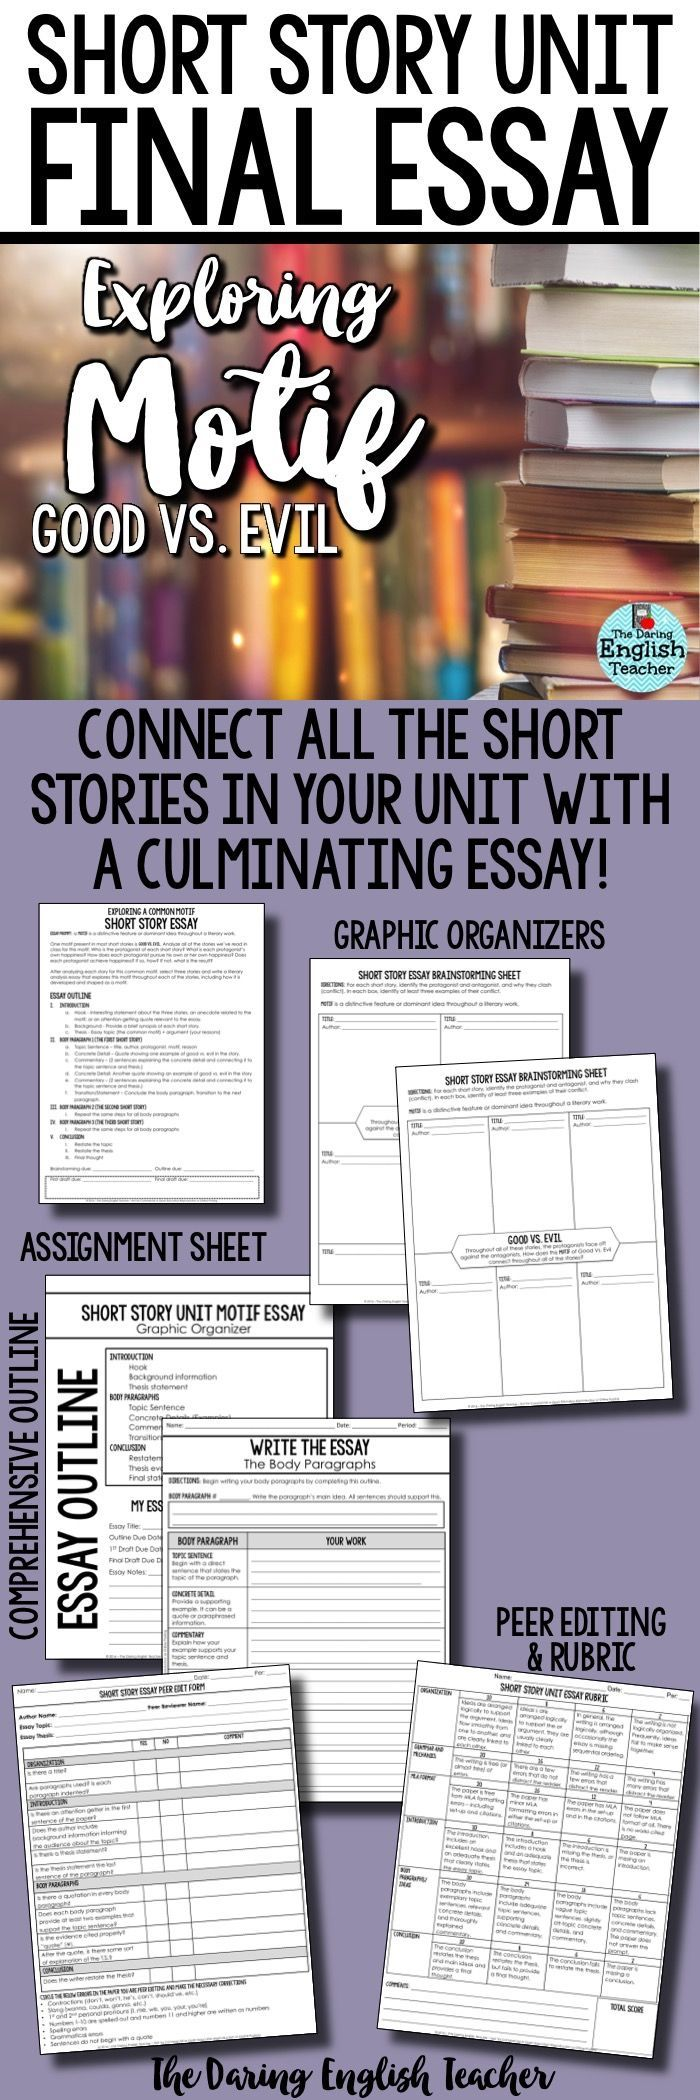 Good short stories for research papers